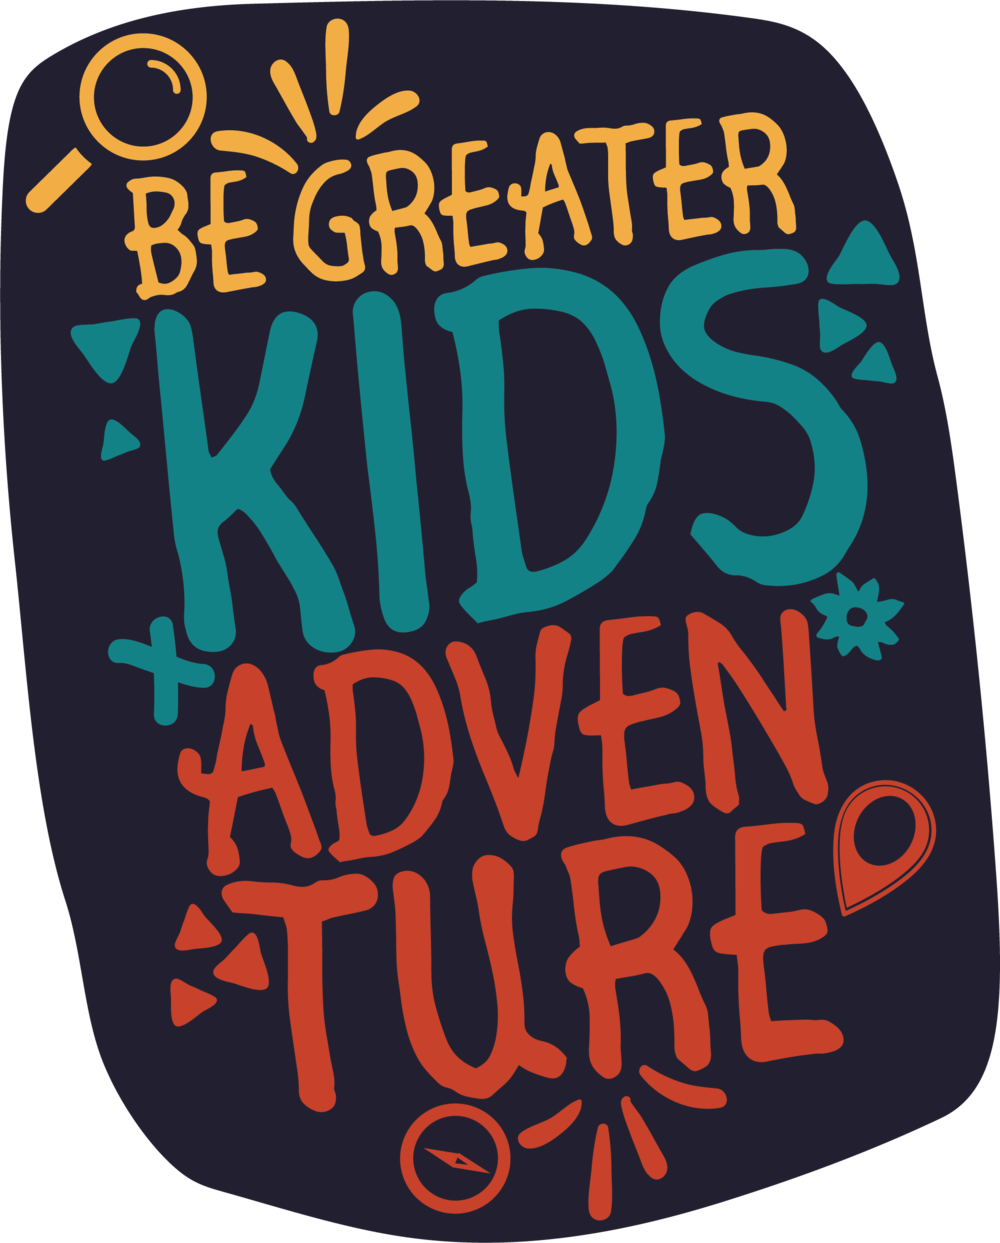 BE GREATER KIDS ADV_LOGO_GREY BACK.png